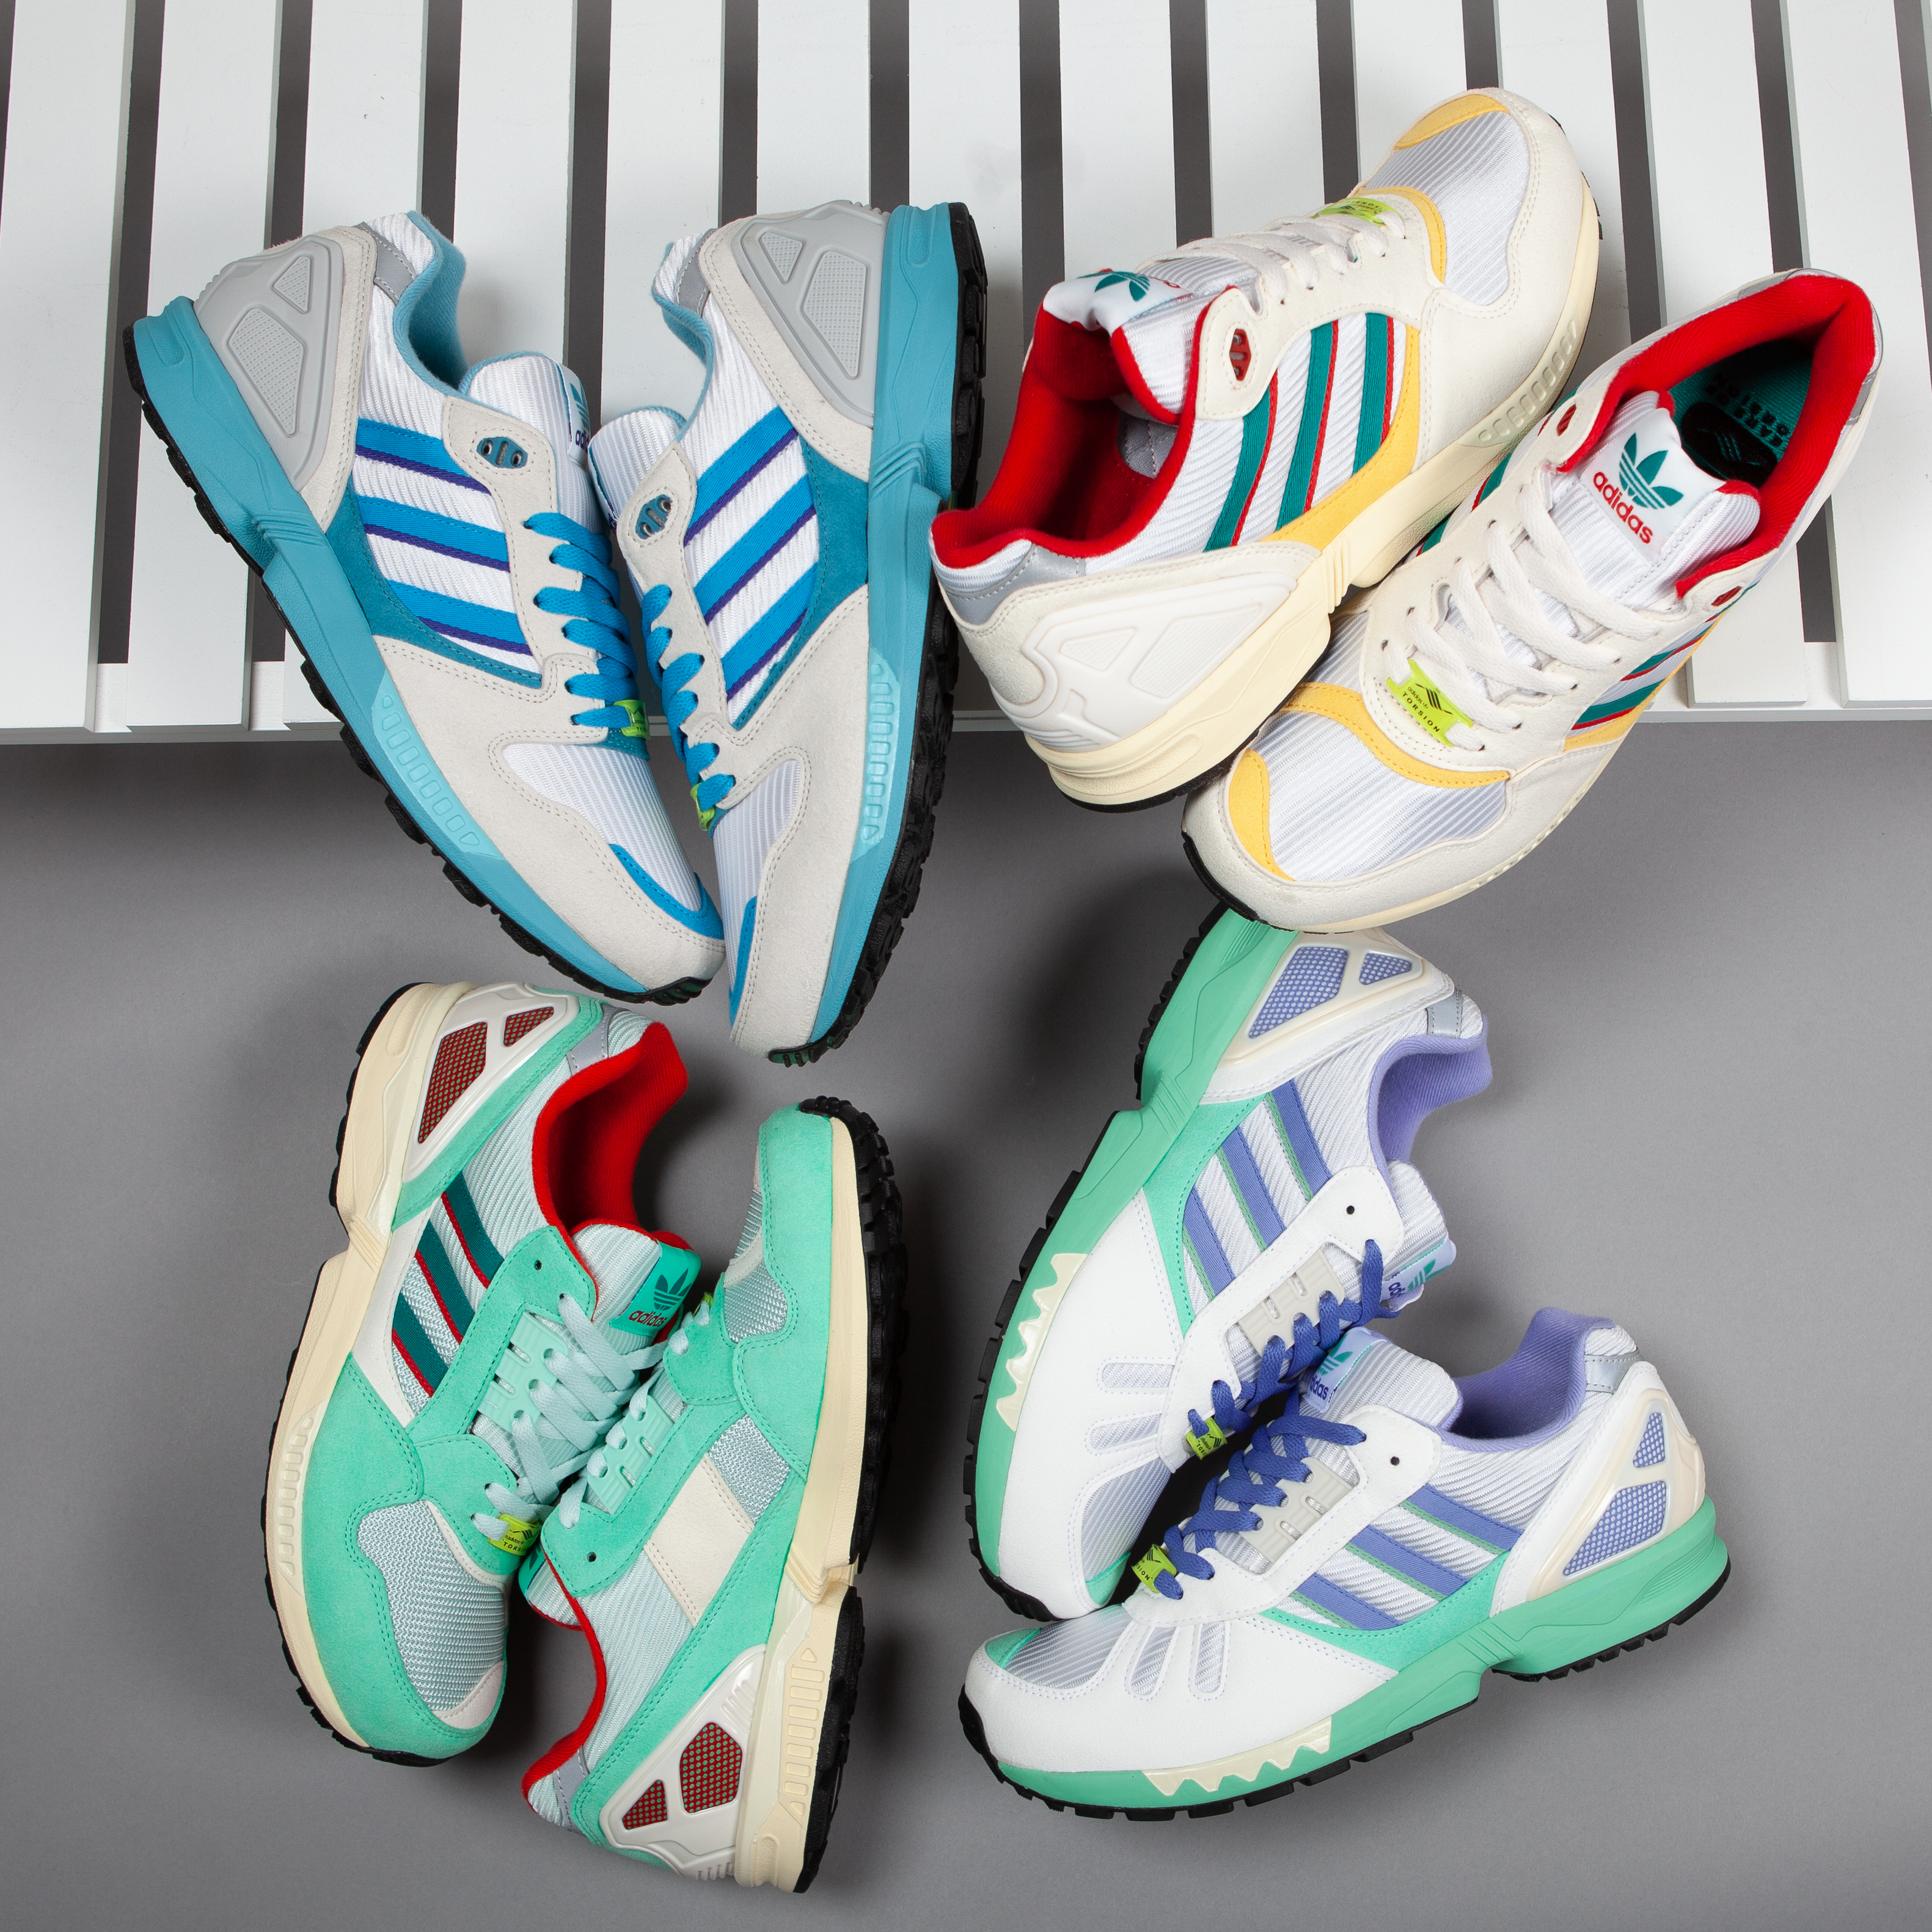 adidas Originals ZX 5000 Response White Blue Orange